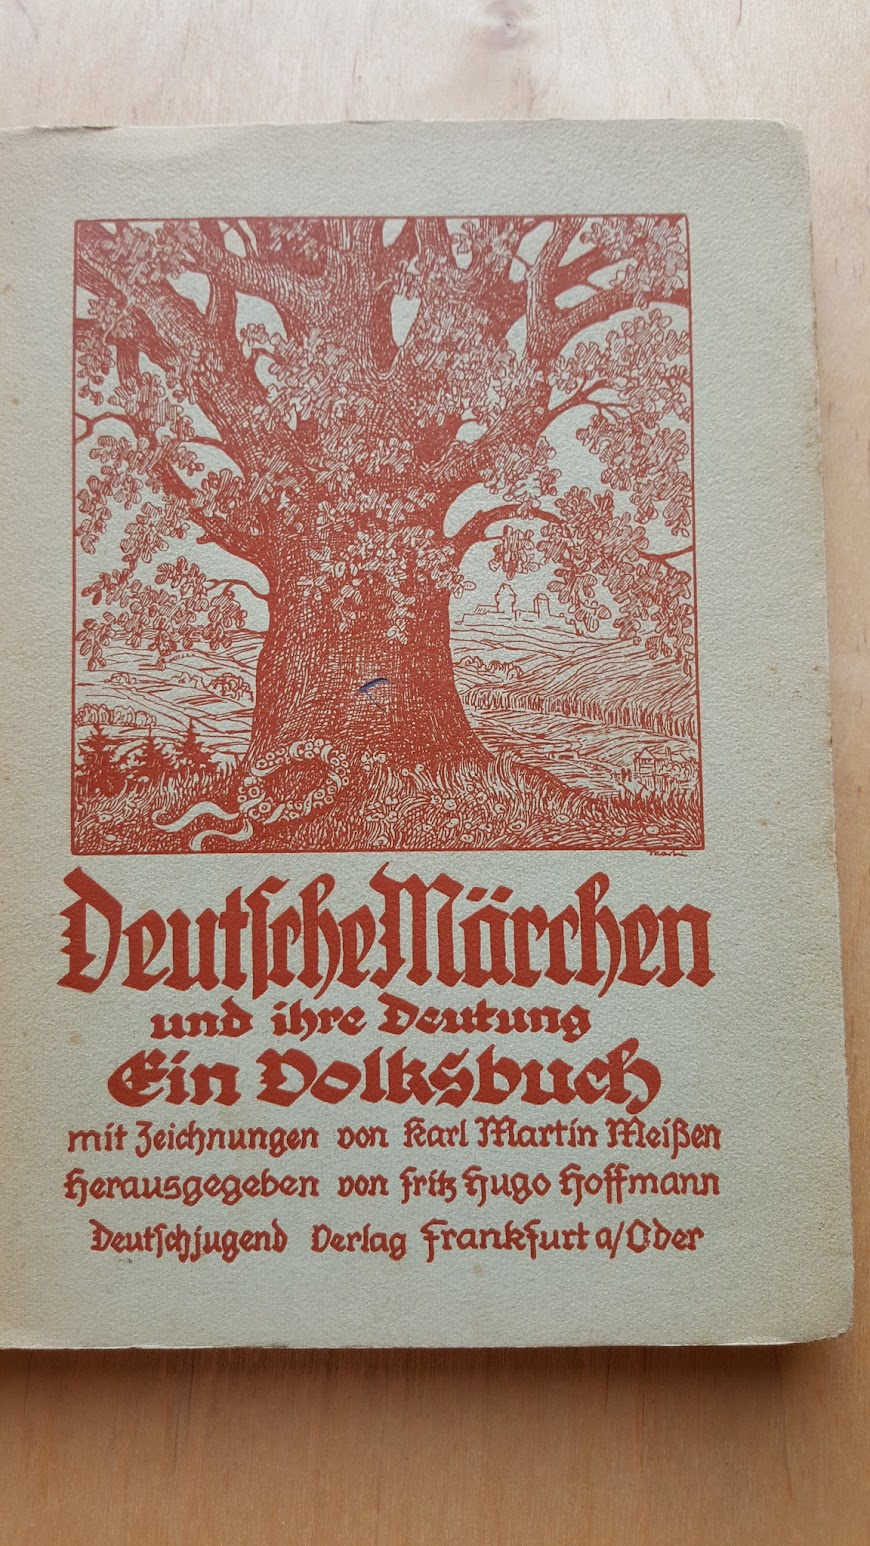 Märchen - Deutung in der Nazi-Zeit